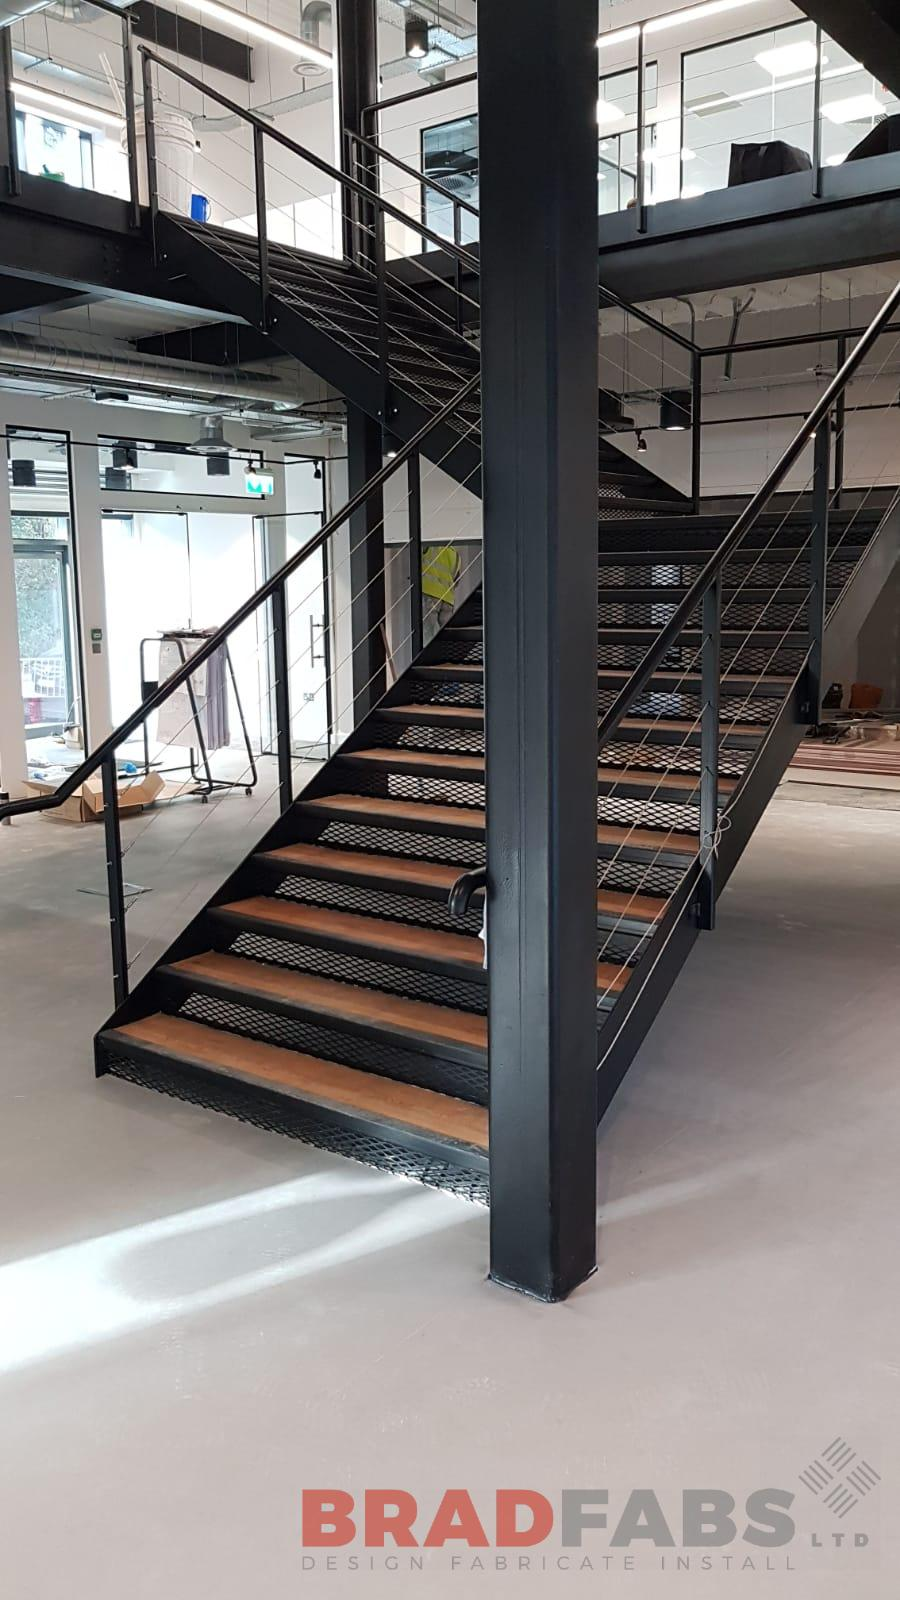 Commercial property, oak treads, Mild steel, Powder coated, Bradfabs